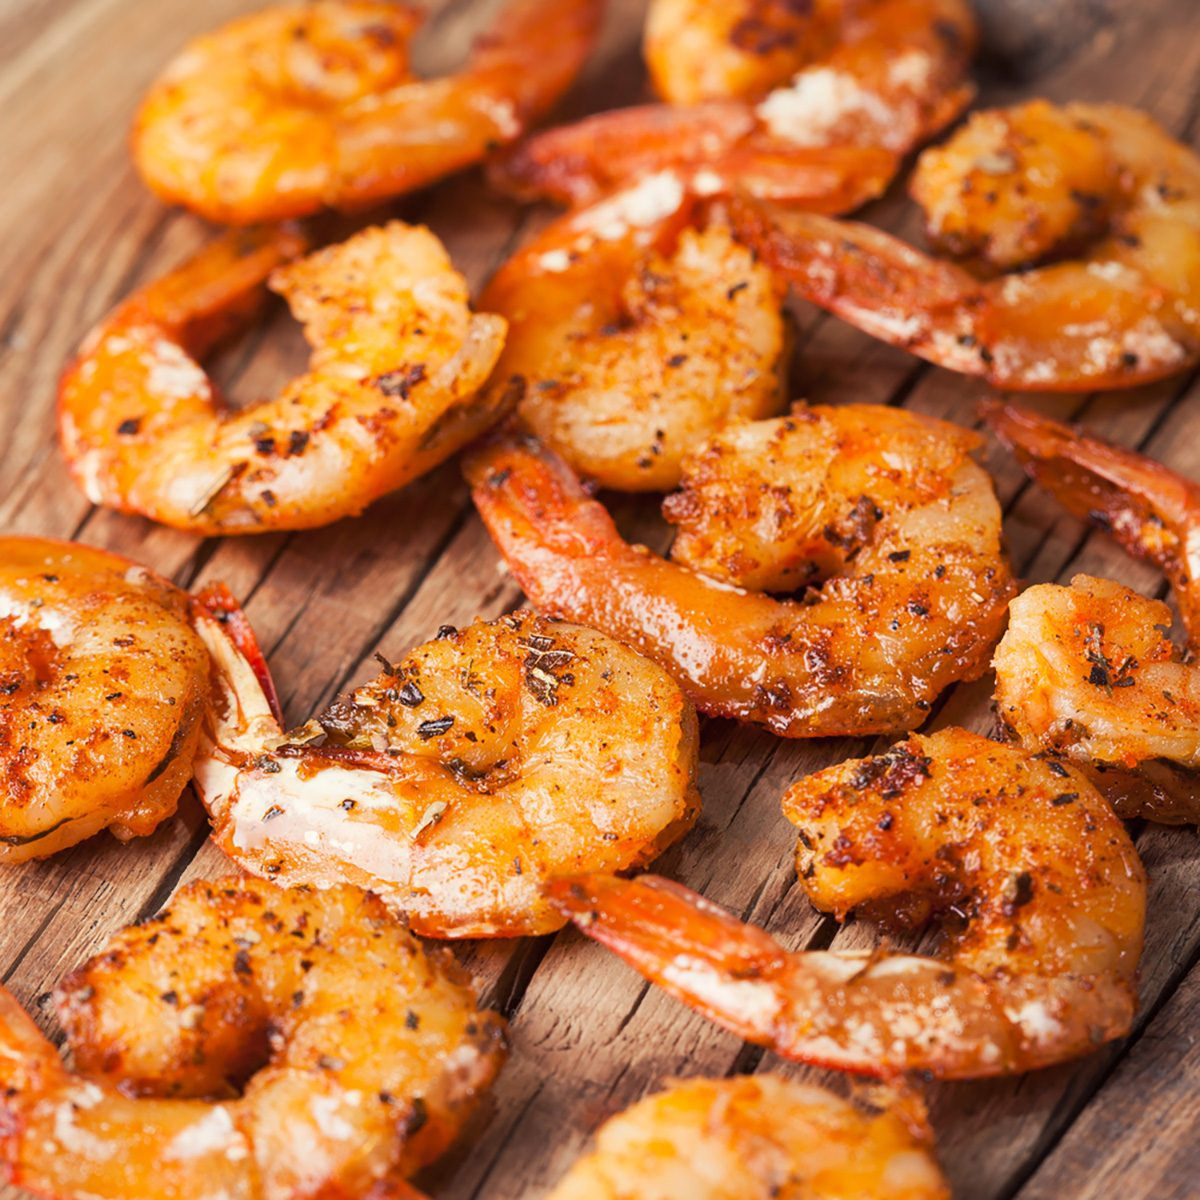 Shrimps fried on a wooden background